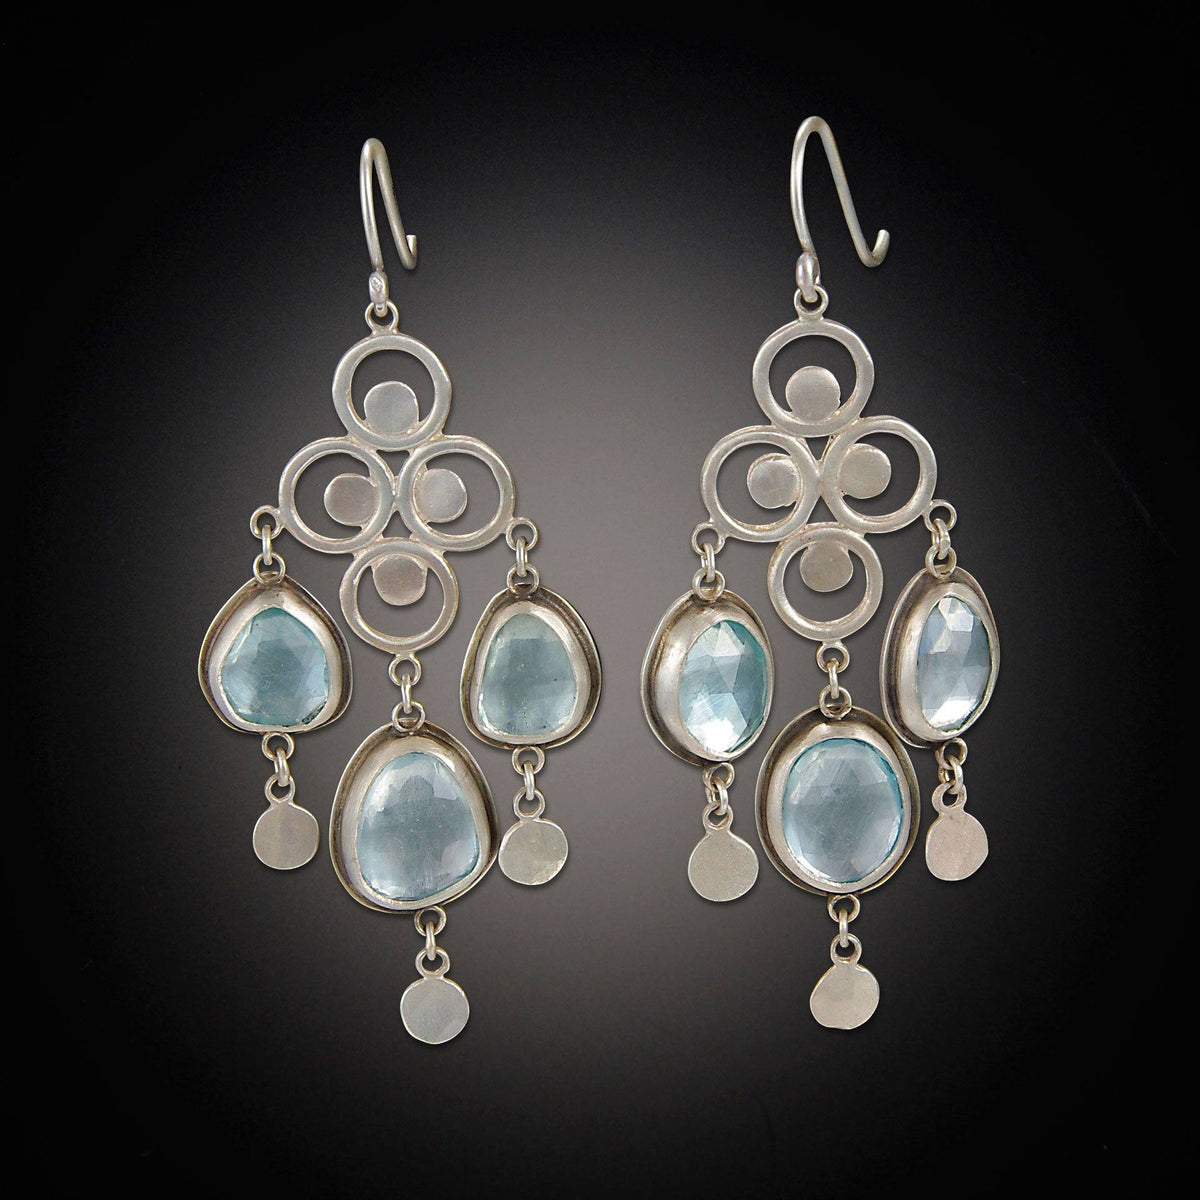 Large filigree chandelier earrings with rose cut blue topaz aloadofball Image collections